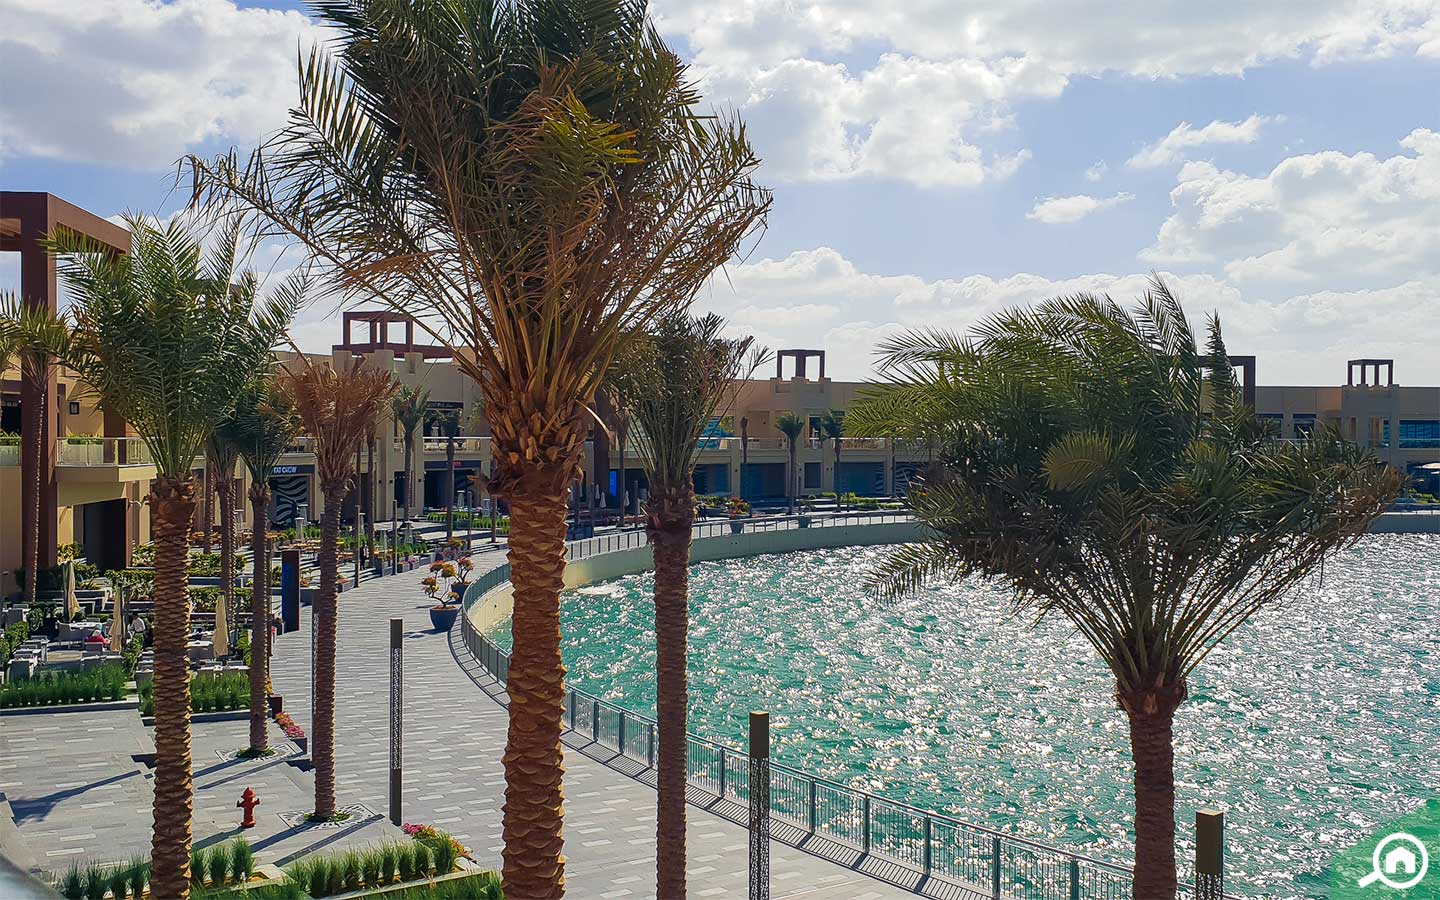 the new destination in palm jumeirah has fountains and beautiful walkways